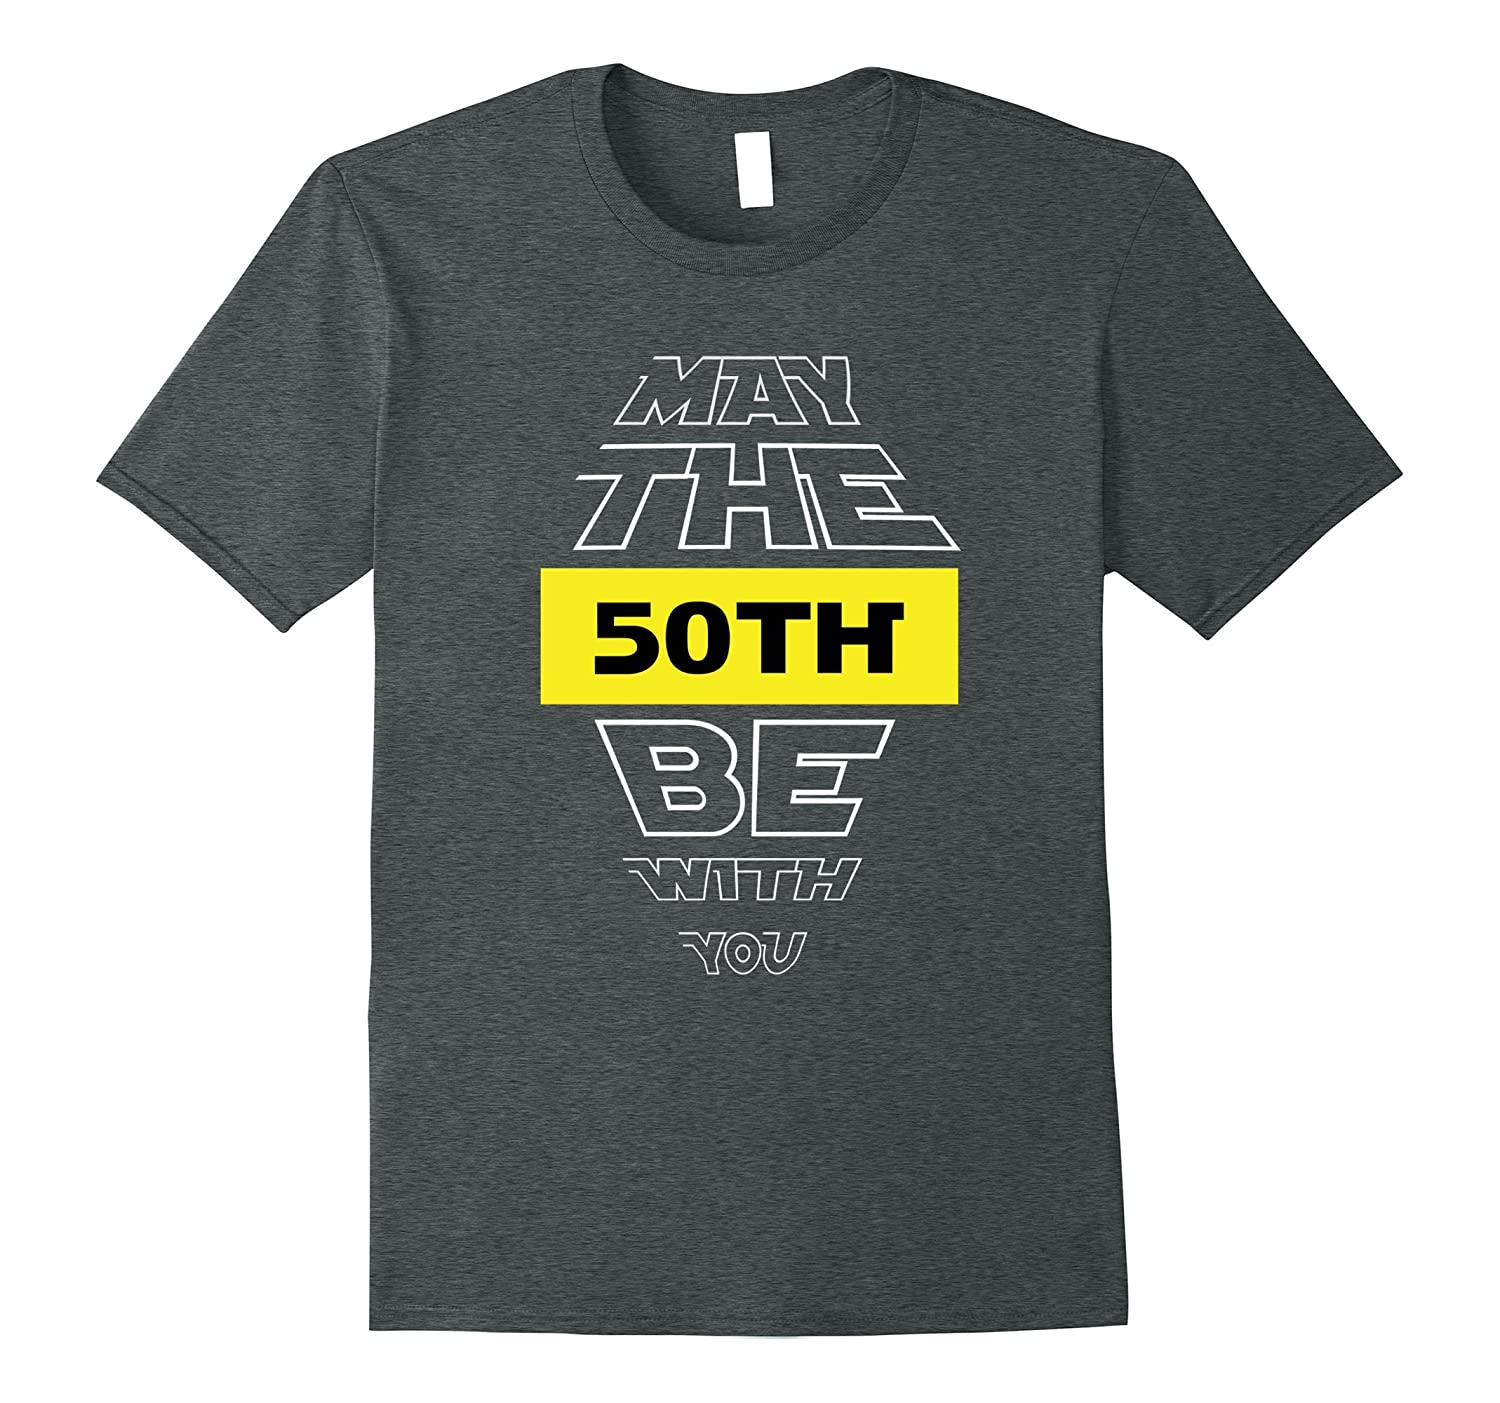 50th Birthday T-Shirt May The 50th Be With You fiftieth bday-ah my shirt one gift